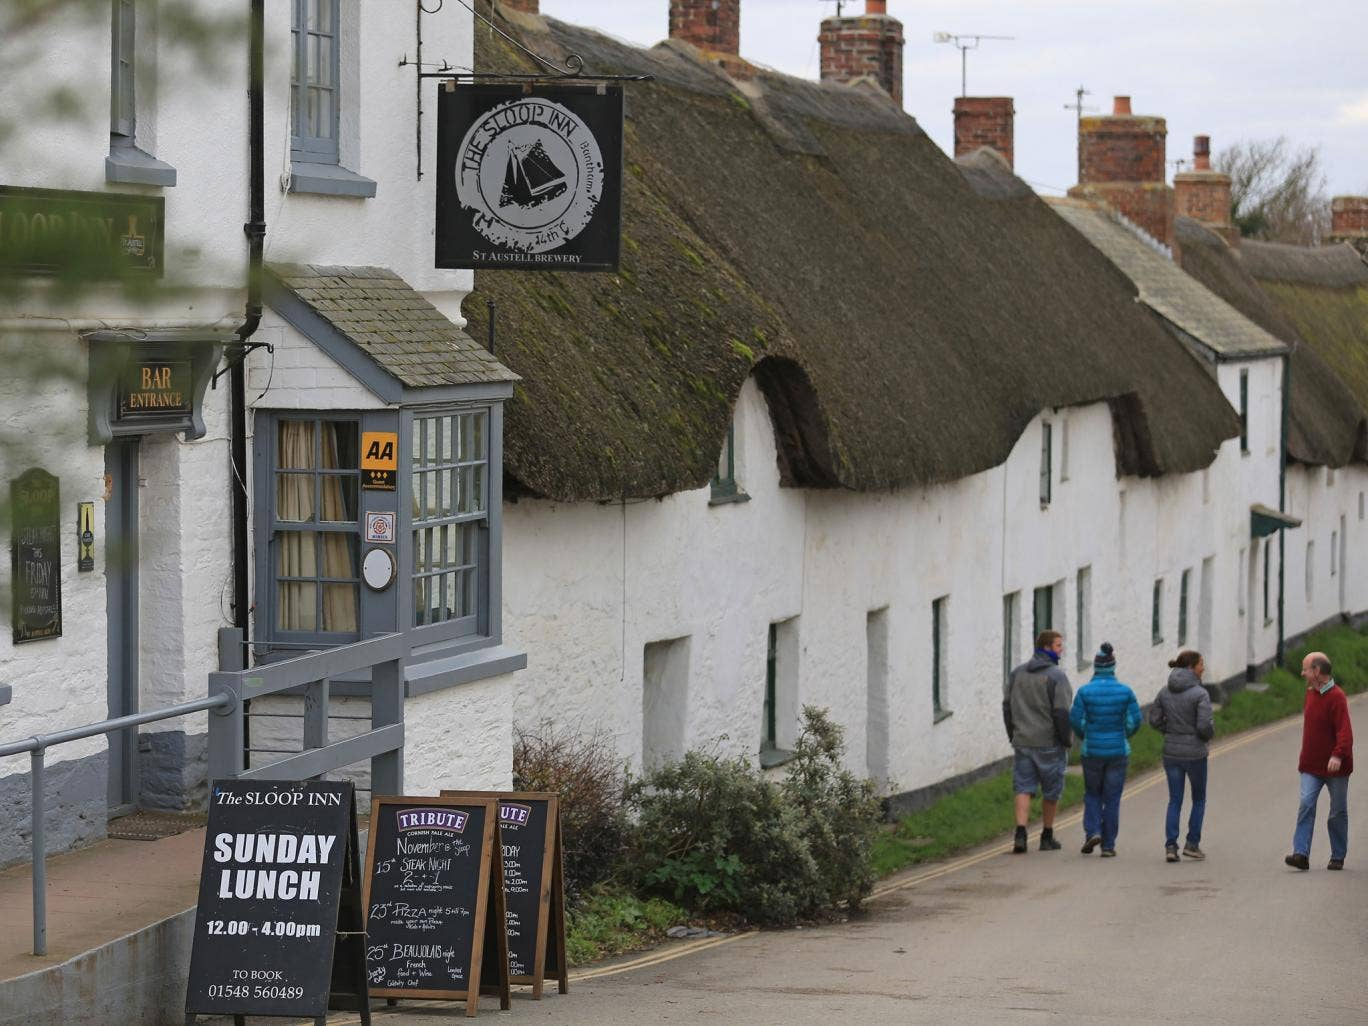 Caption:BANTHAM, ENGLAND - NOVEMBER 13: People walk past the local pub in the picturesque seaside village of Bantham on November 13, 2013 in Devon, England. Evans Estates, which has owned the land, buildings and popular surfing beach for nearly 100 years,